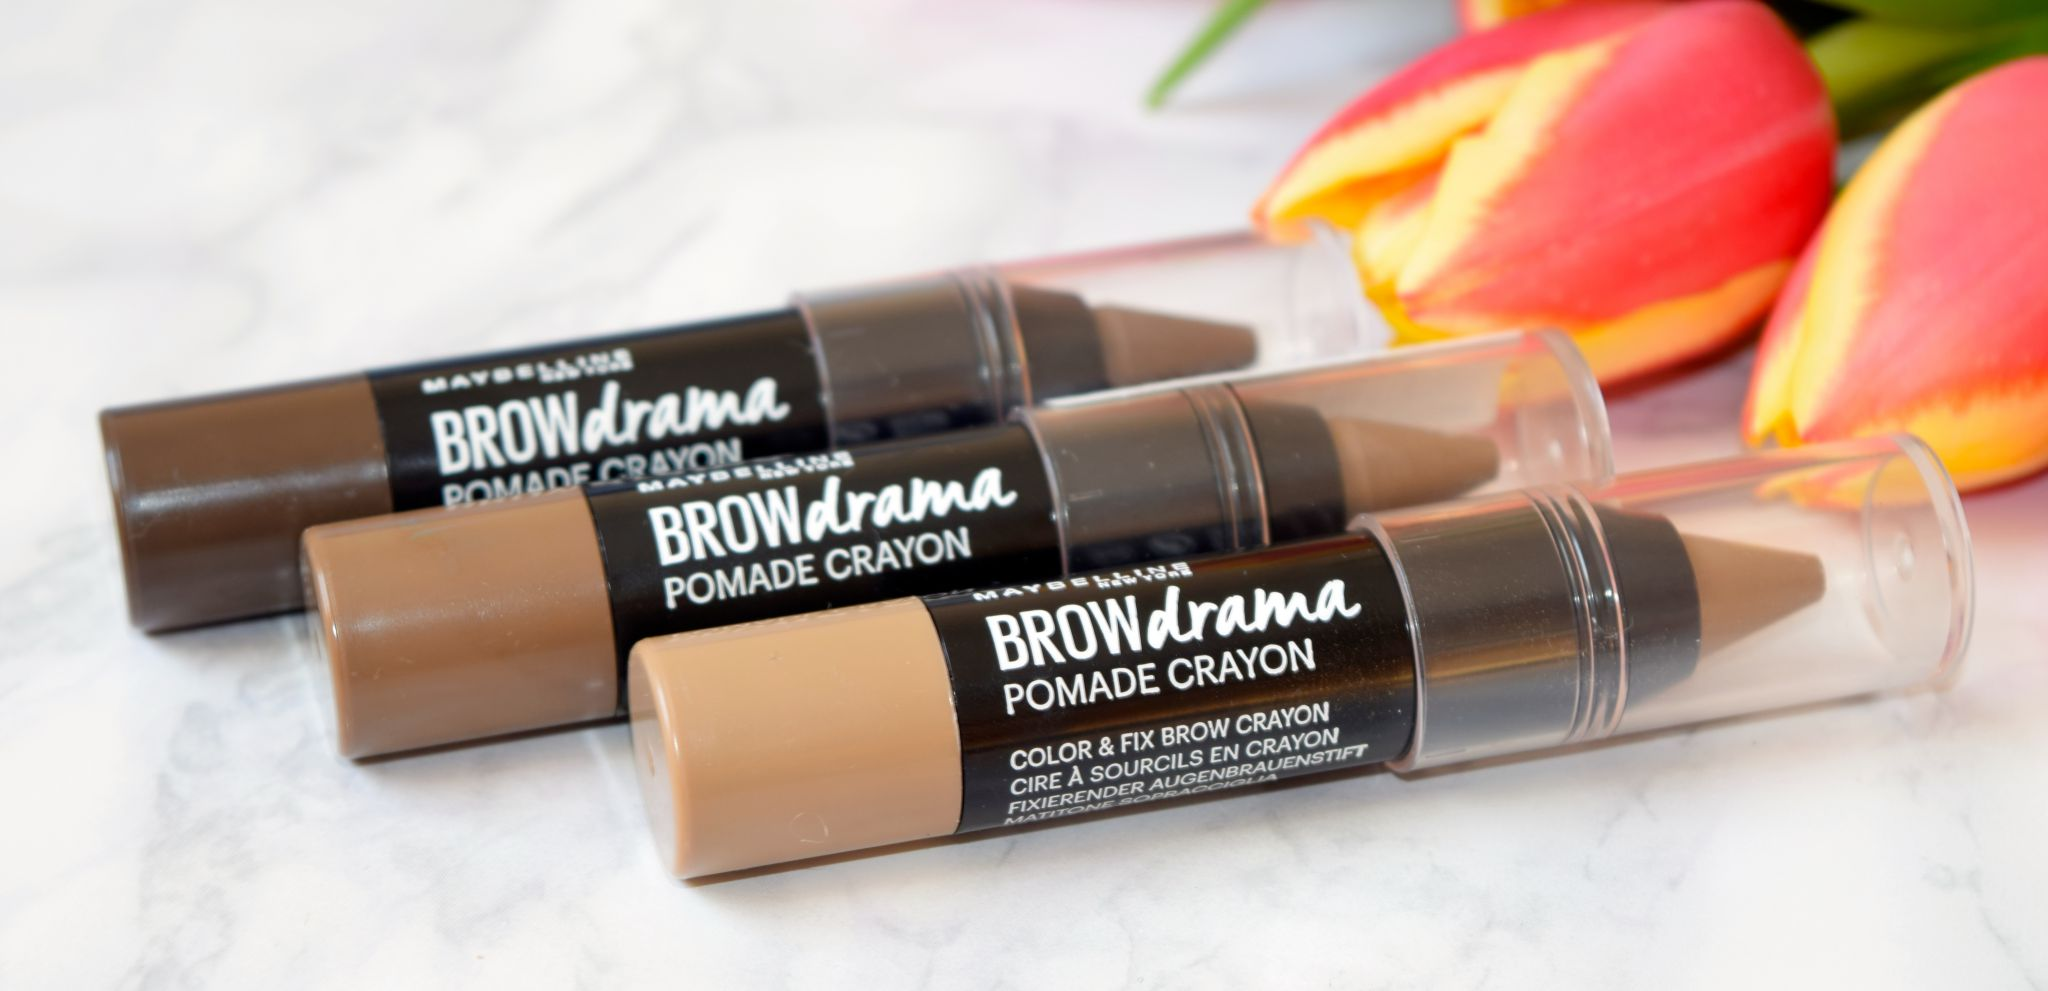 maybelline brow drama crayon review